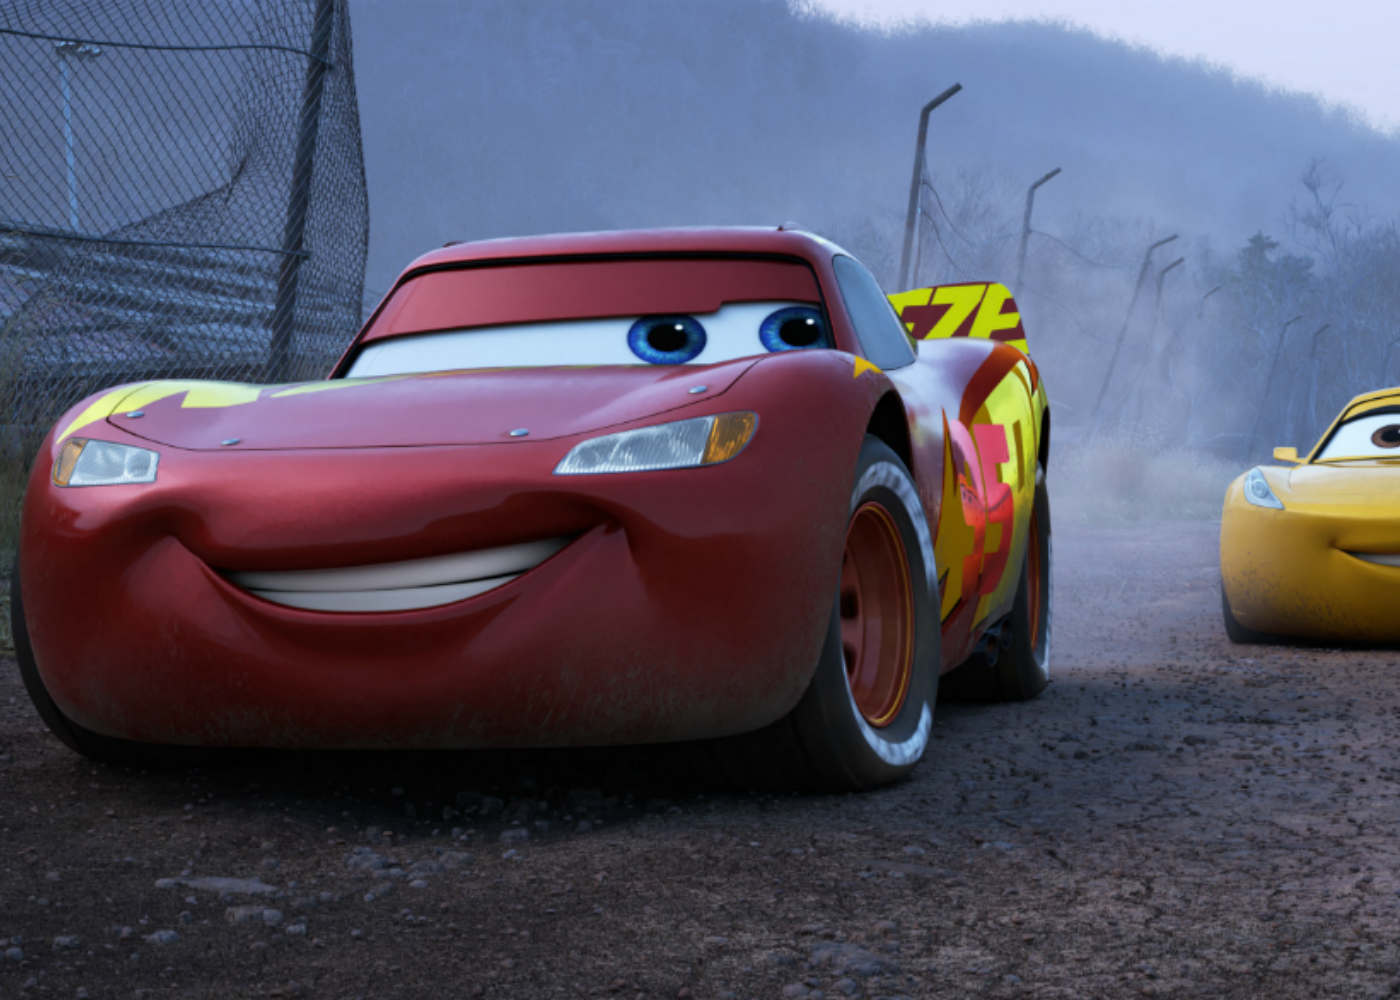 Review: Cars 3 Travels a Rocky Road to the Middle Lane